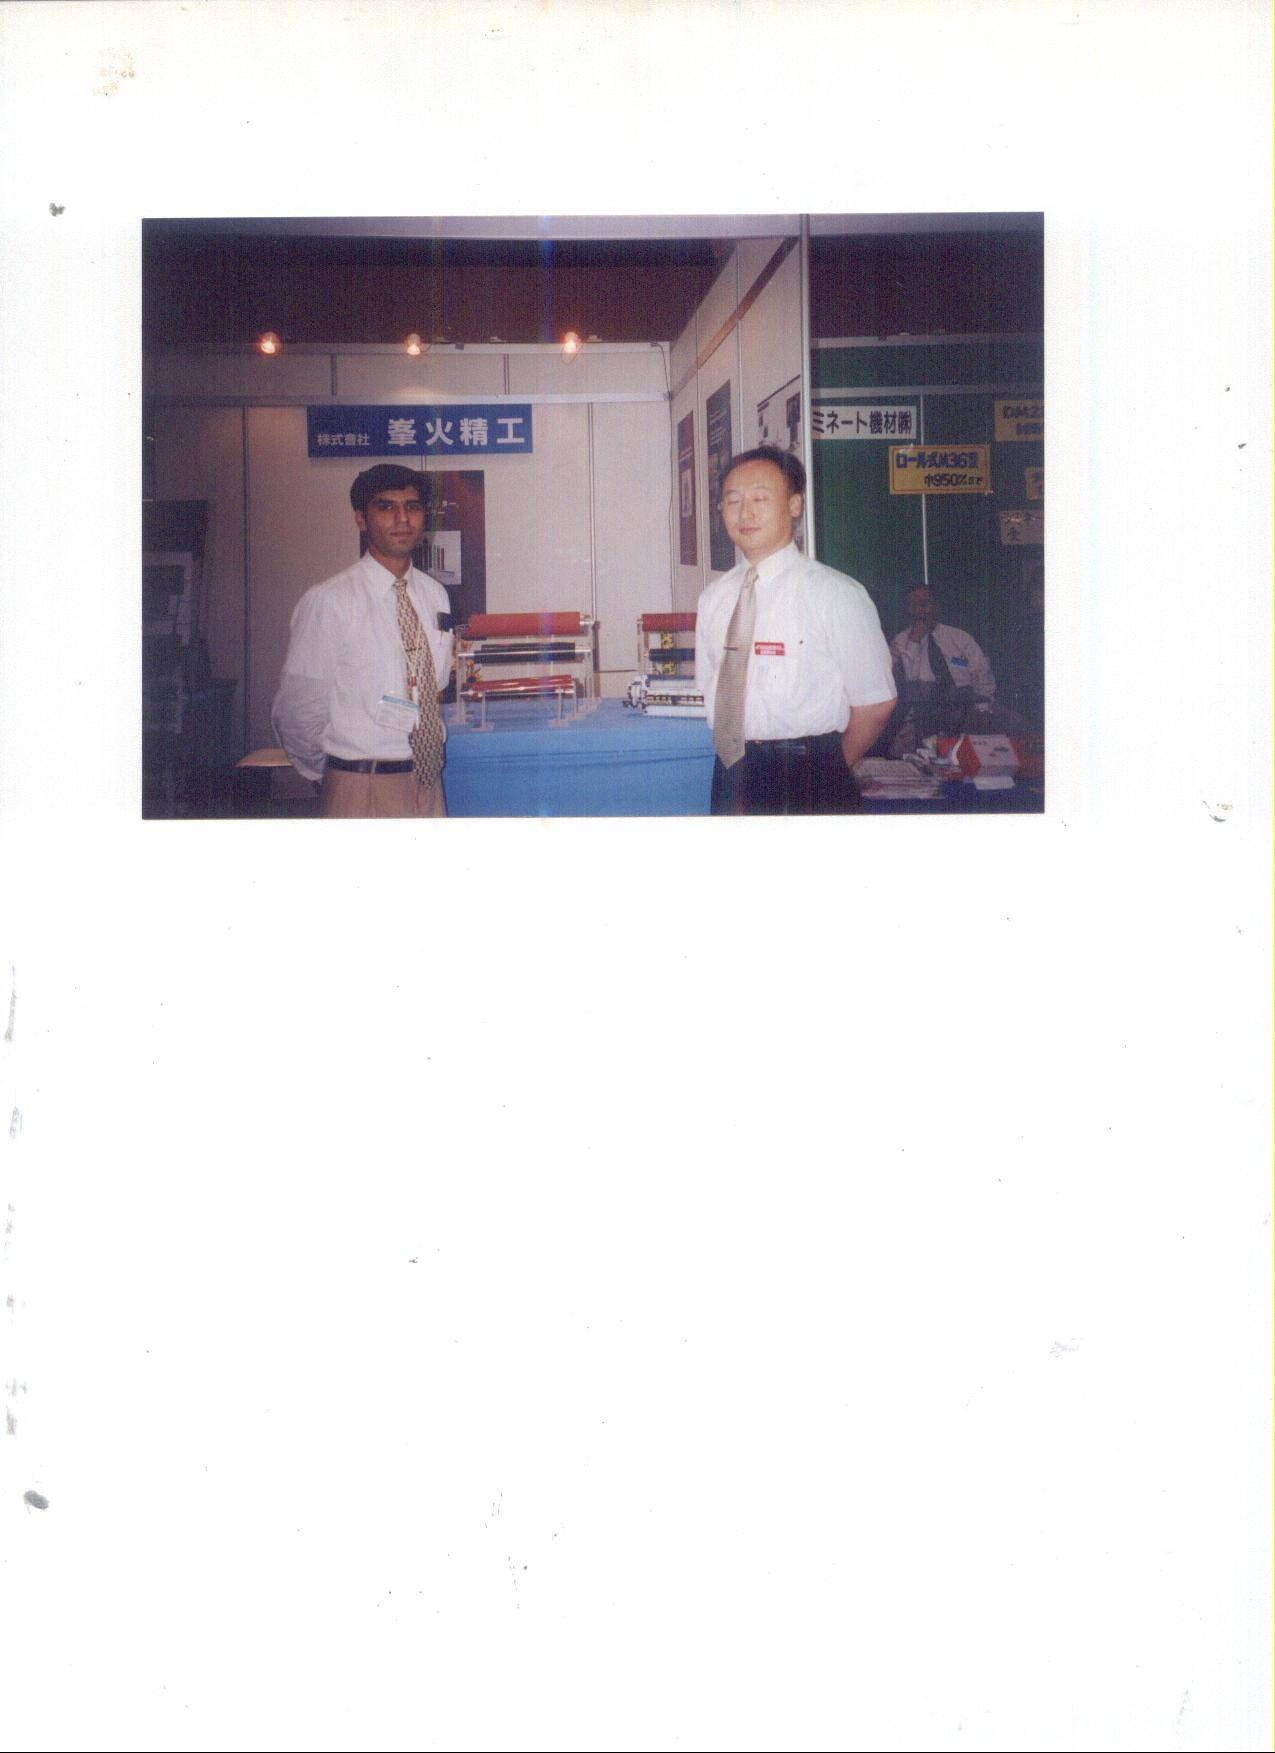 Mr Kim BongHwa Precision Copier Roller and Parts Mfr with Amir Ali In Tokyo ISOT Exhibition for Prod